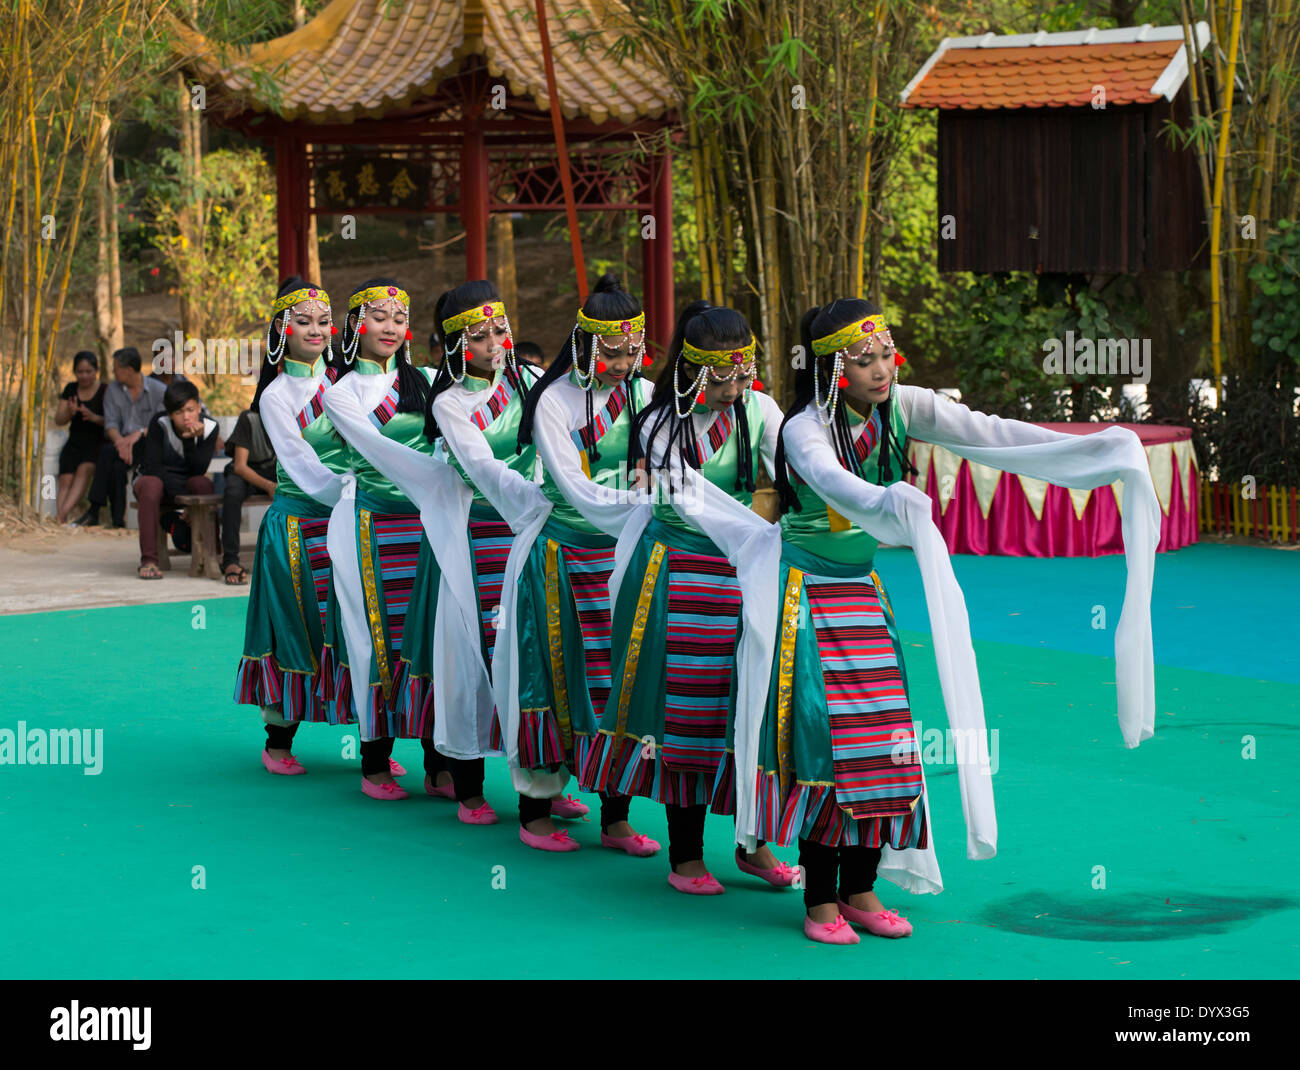 Traditional dance performance at Cambodian Cultural Village, Siem Reap, Cambodia - Stock Image